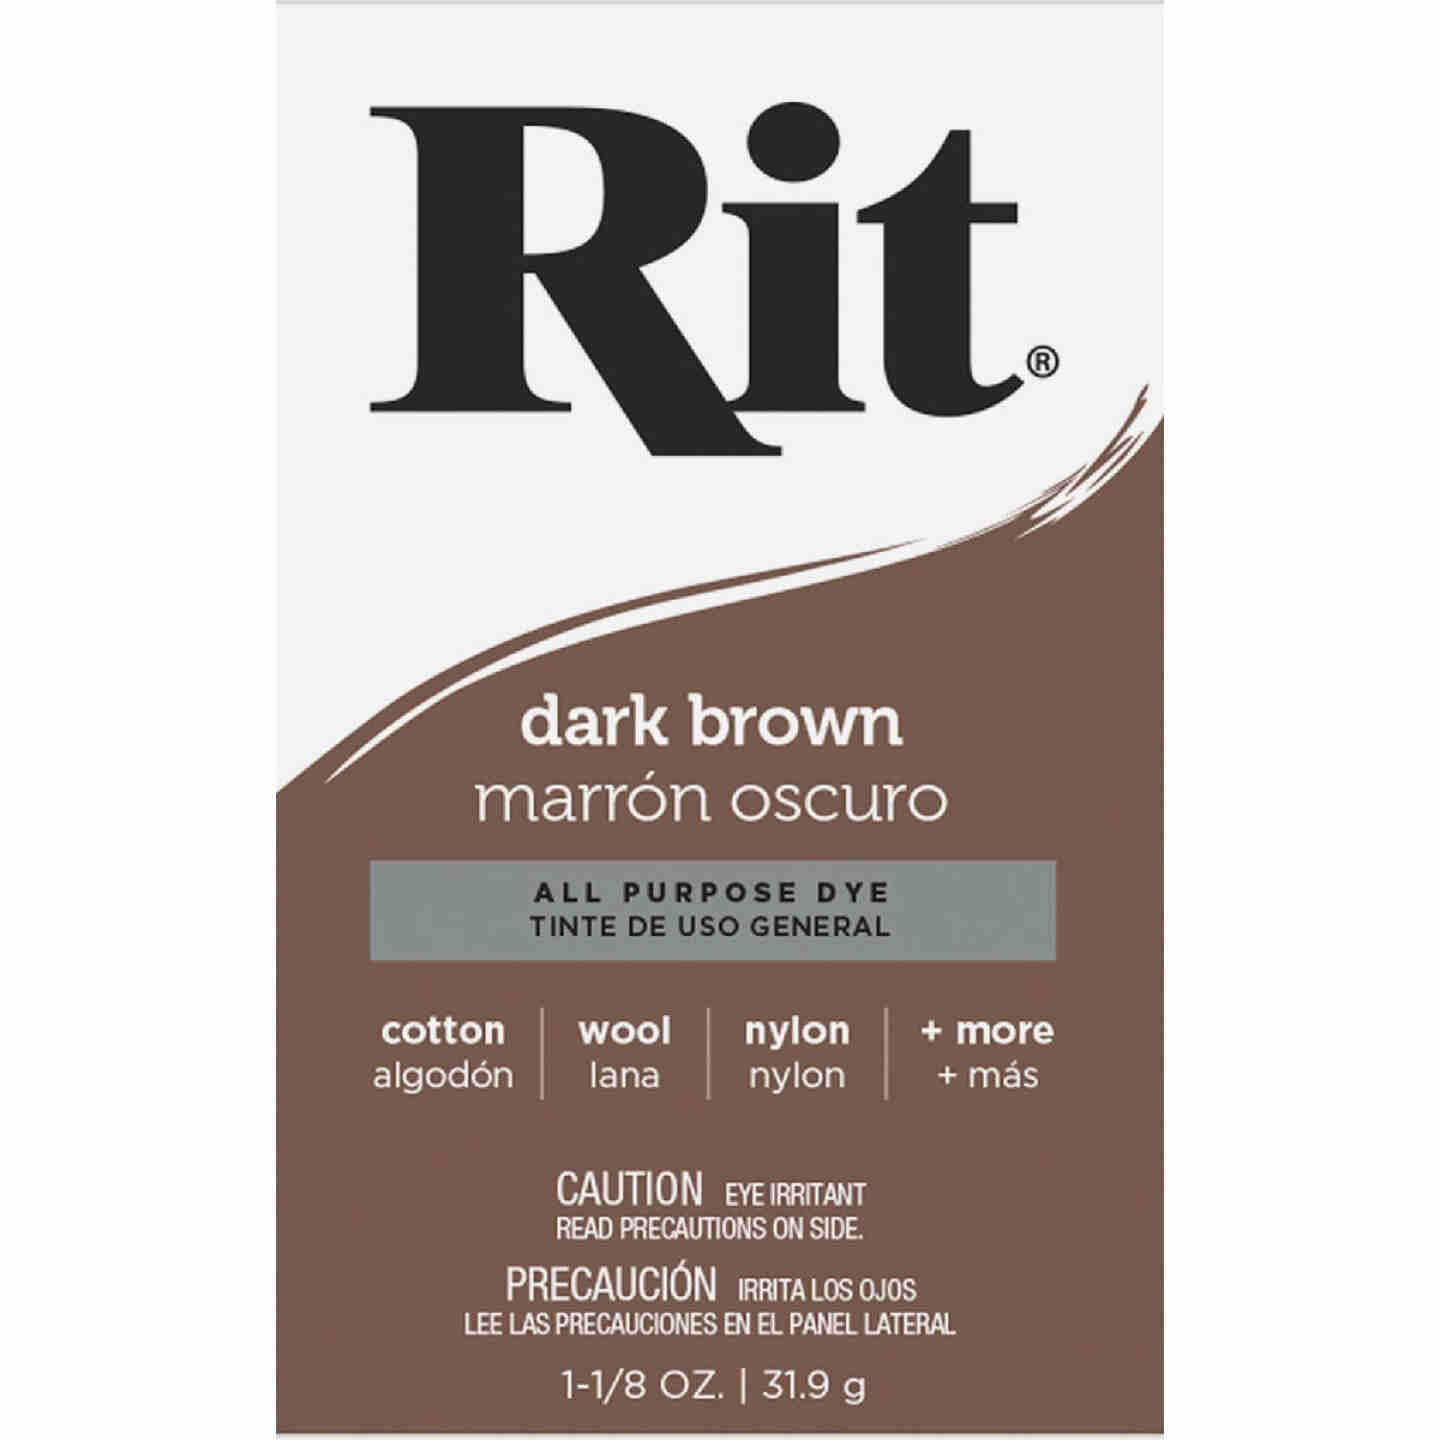 Rit Dark Brown 1-1/8 Oz. Powder Dye Image 2